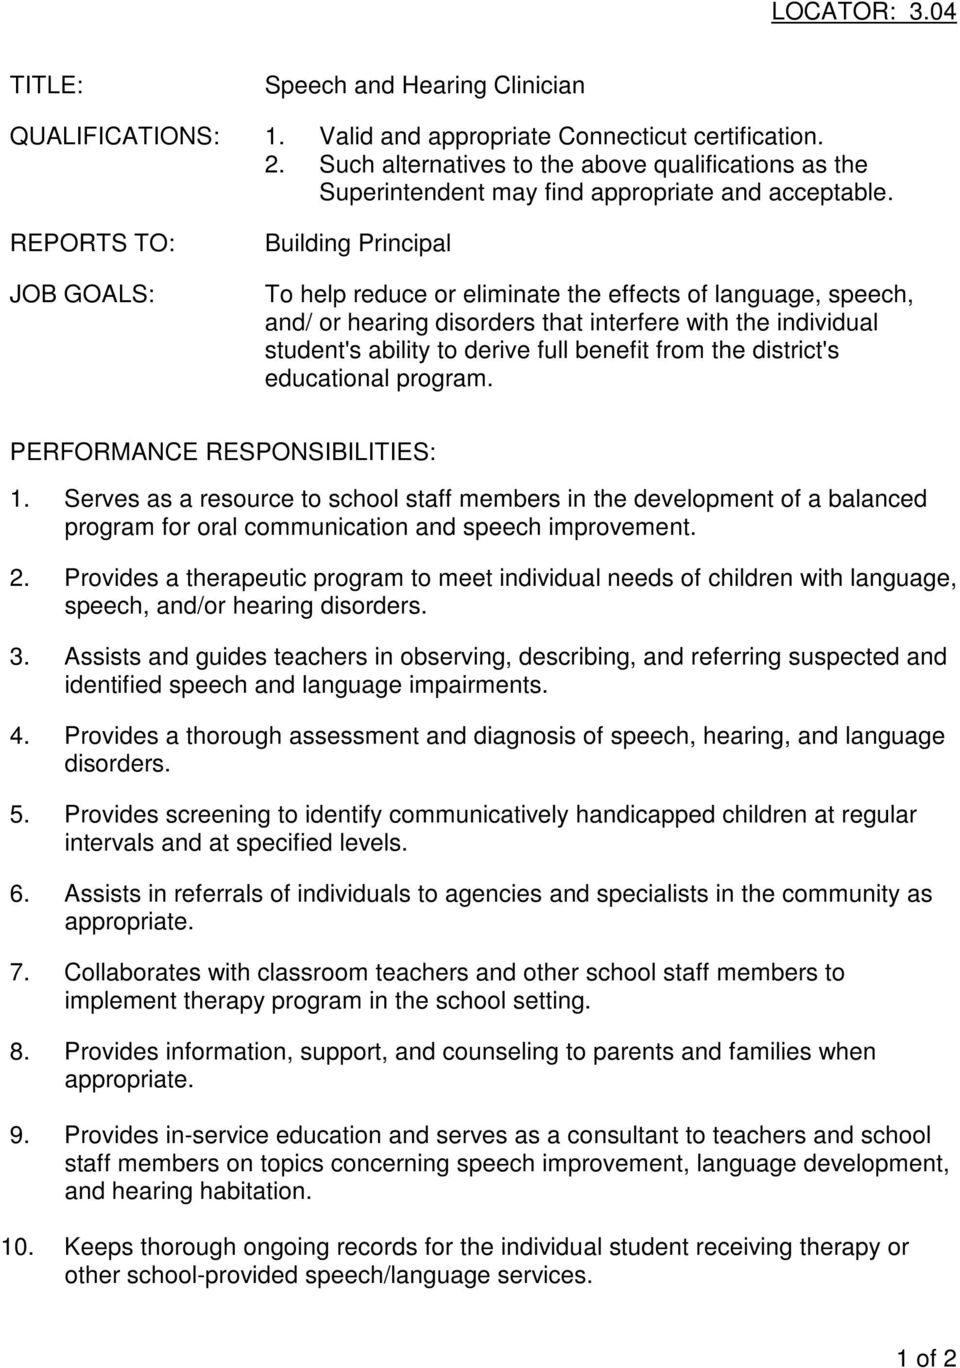 REPORTS TO: JOB GOALS: Building Principal To help reduce or eliminate the effects of language, speech, and/ or hearing disorders that interfere with the individual student's ability to derive full